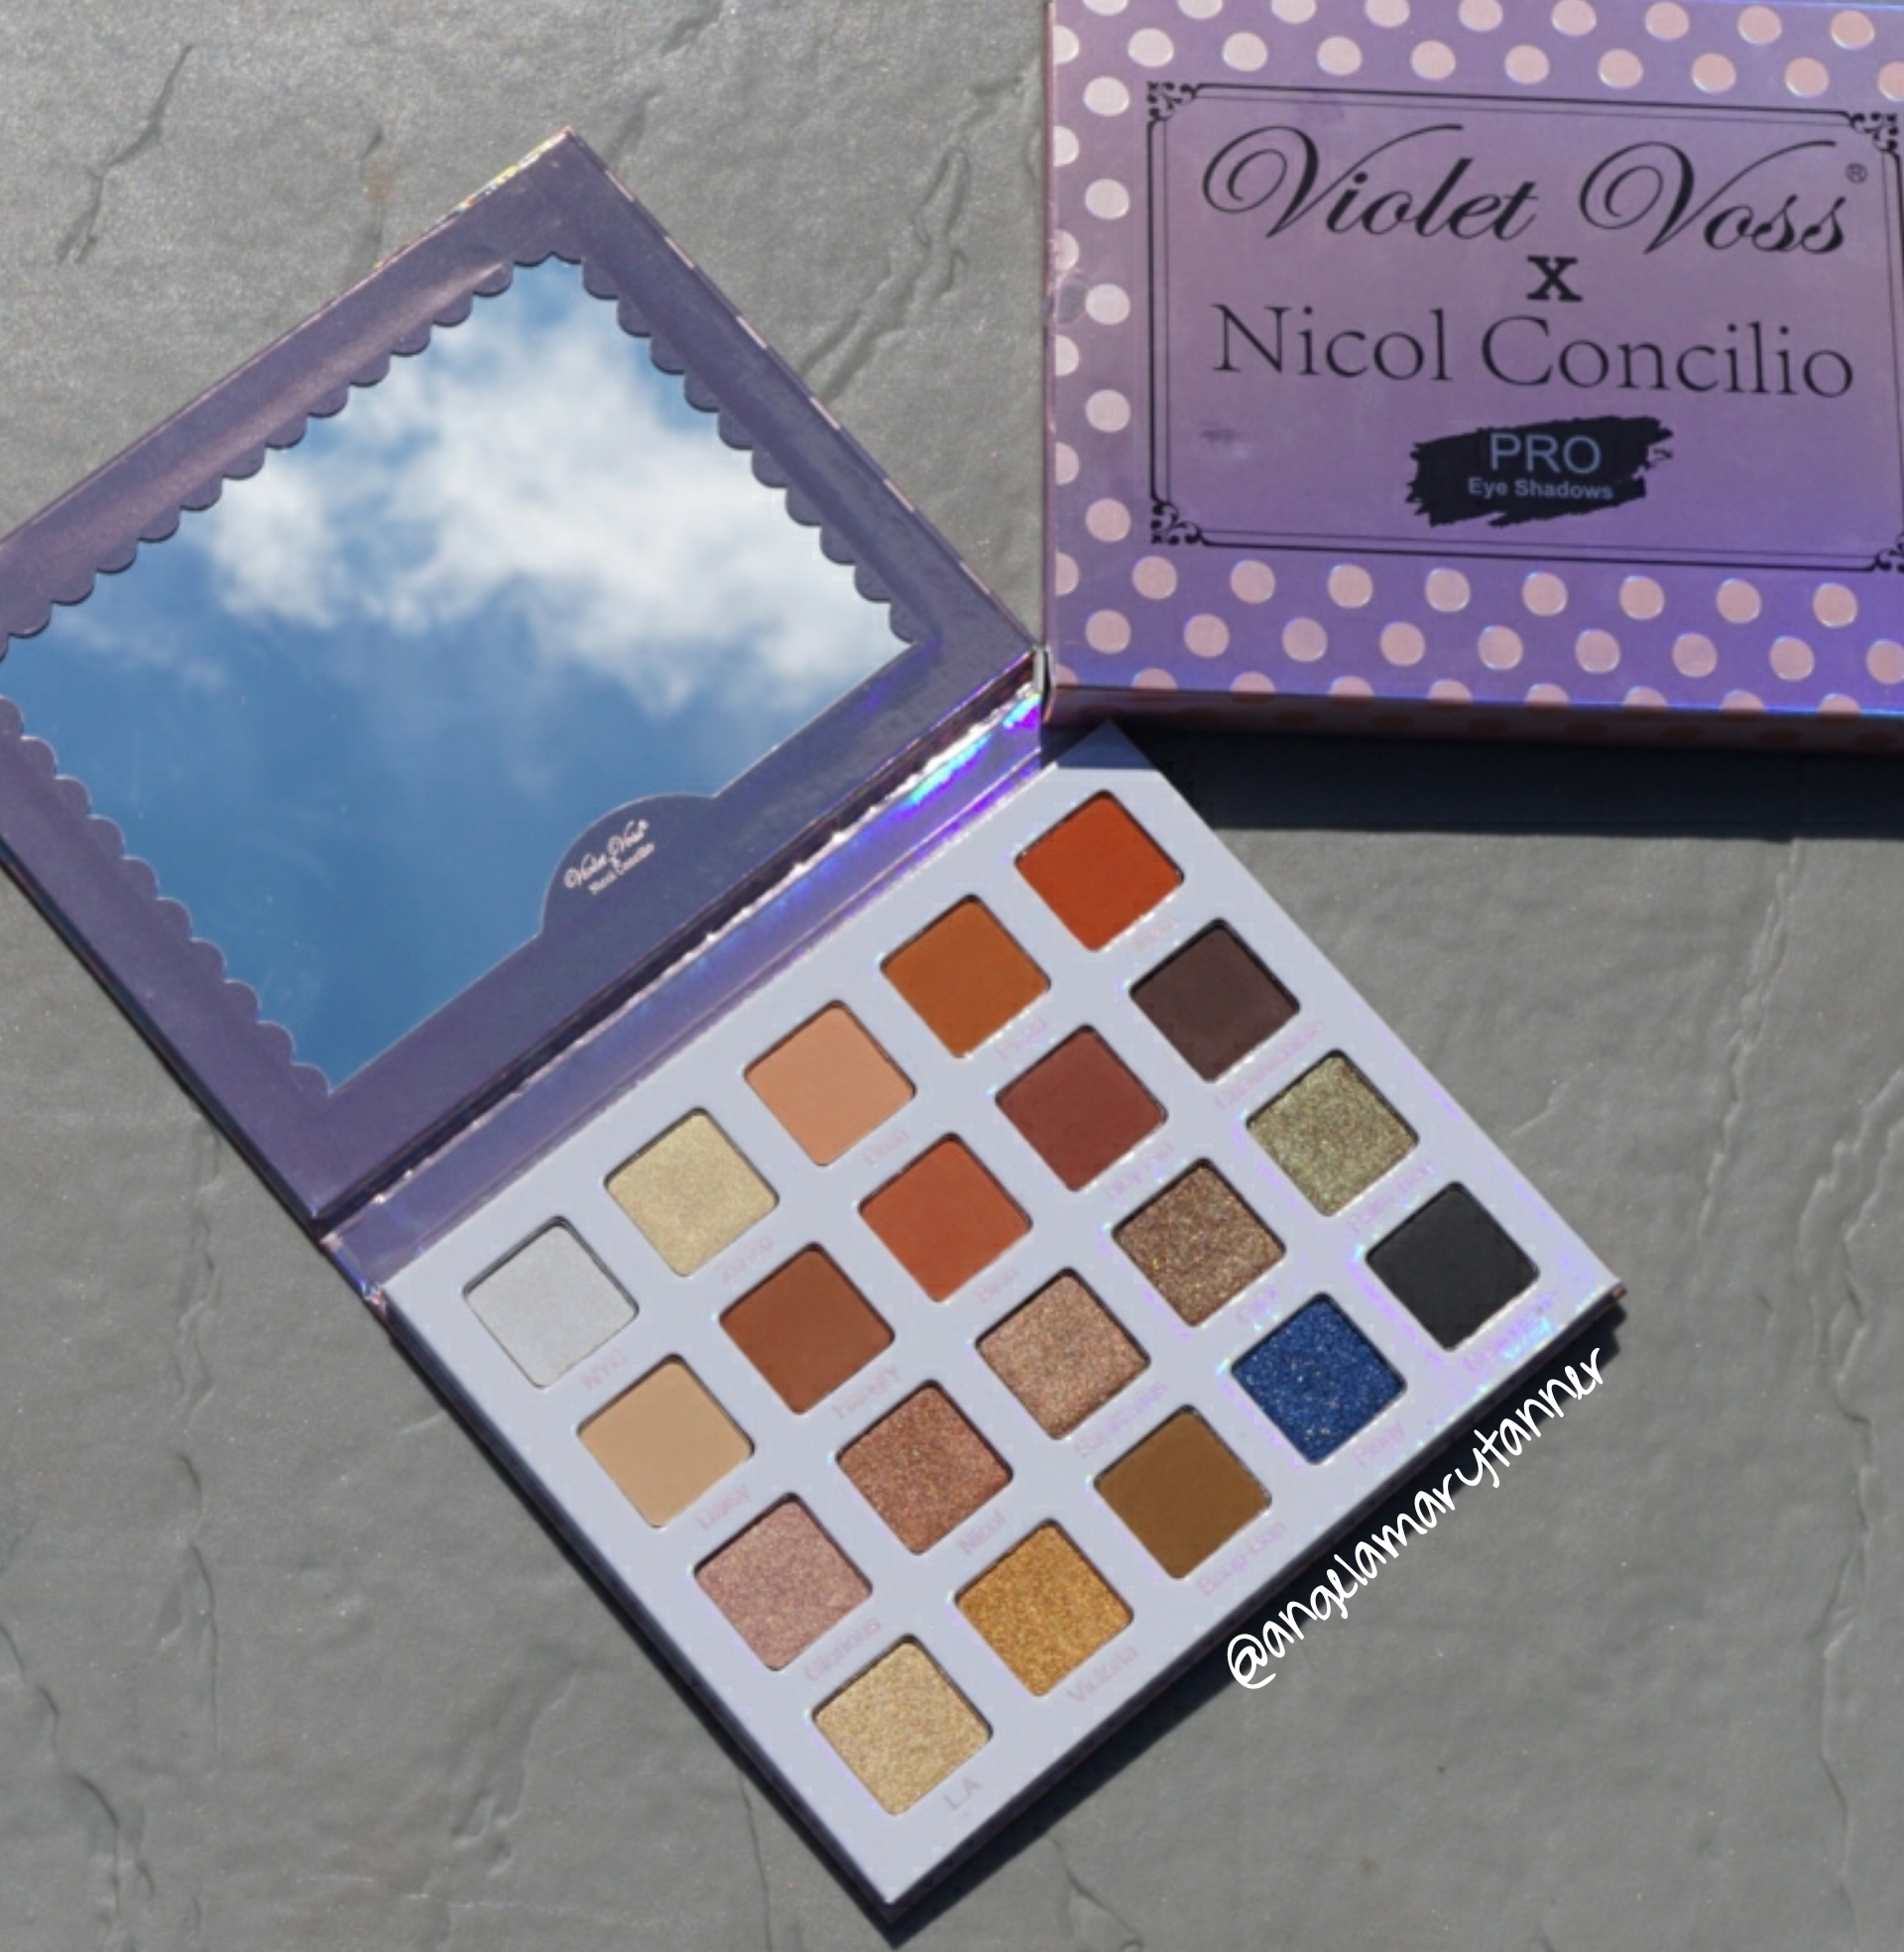 Violet voss coupon code